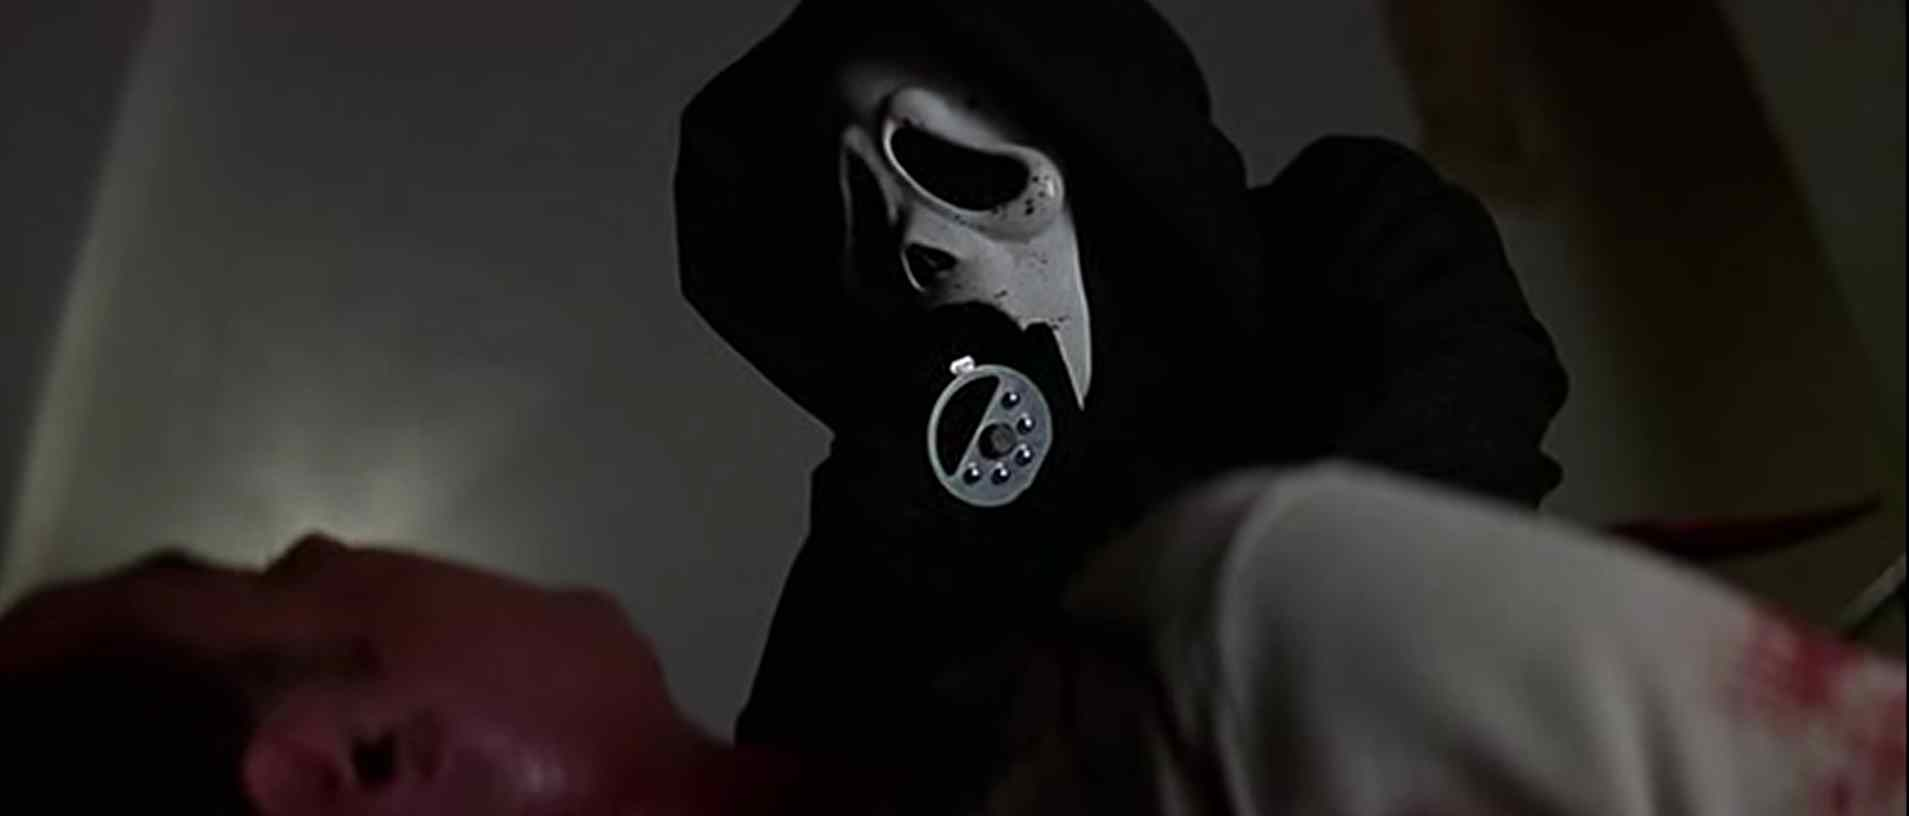 scream-3-ghostface